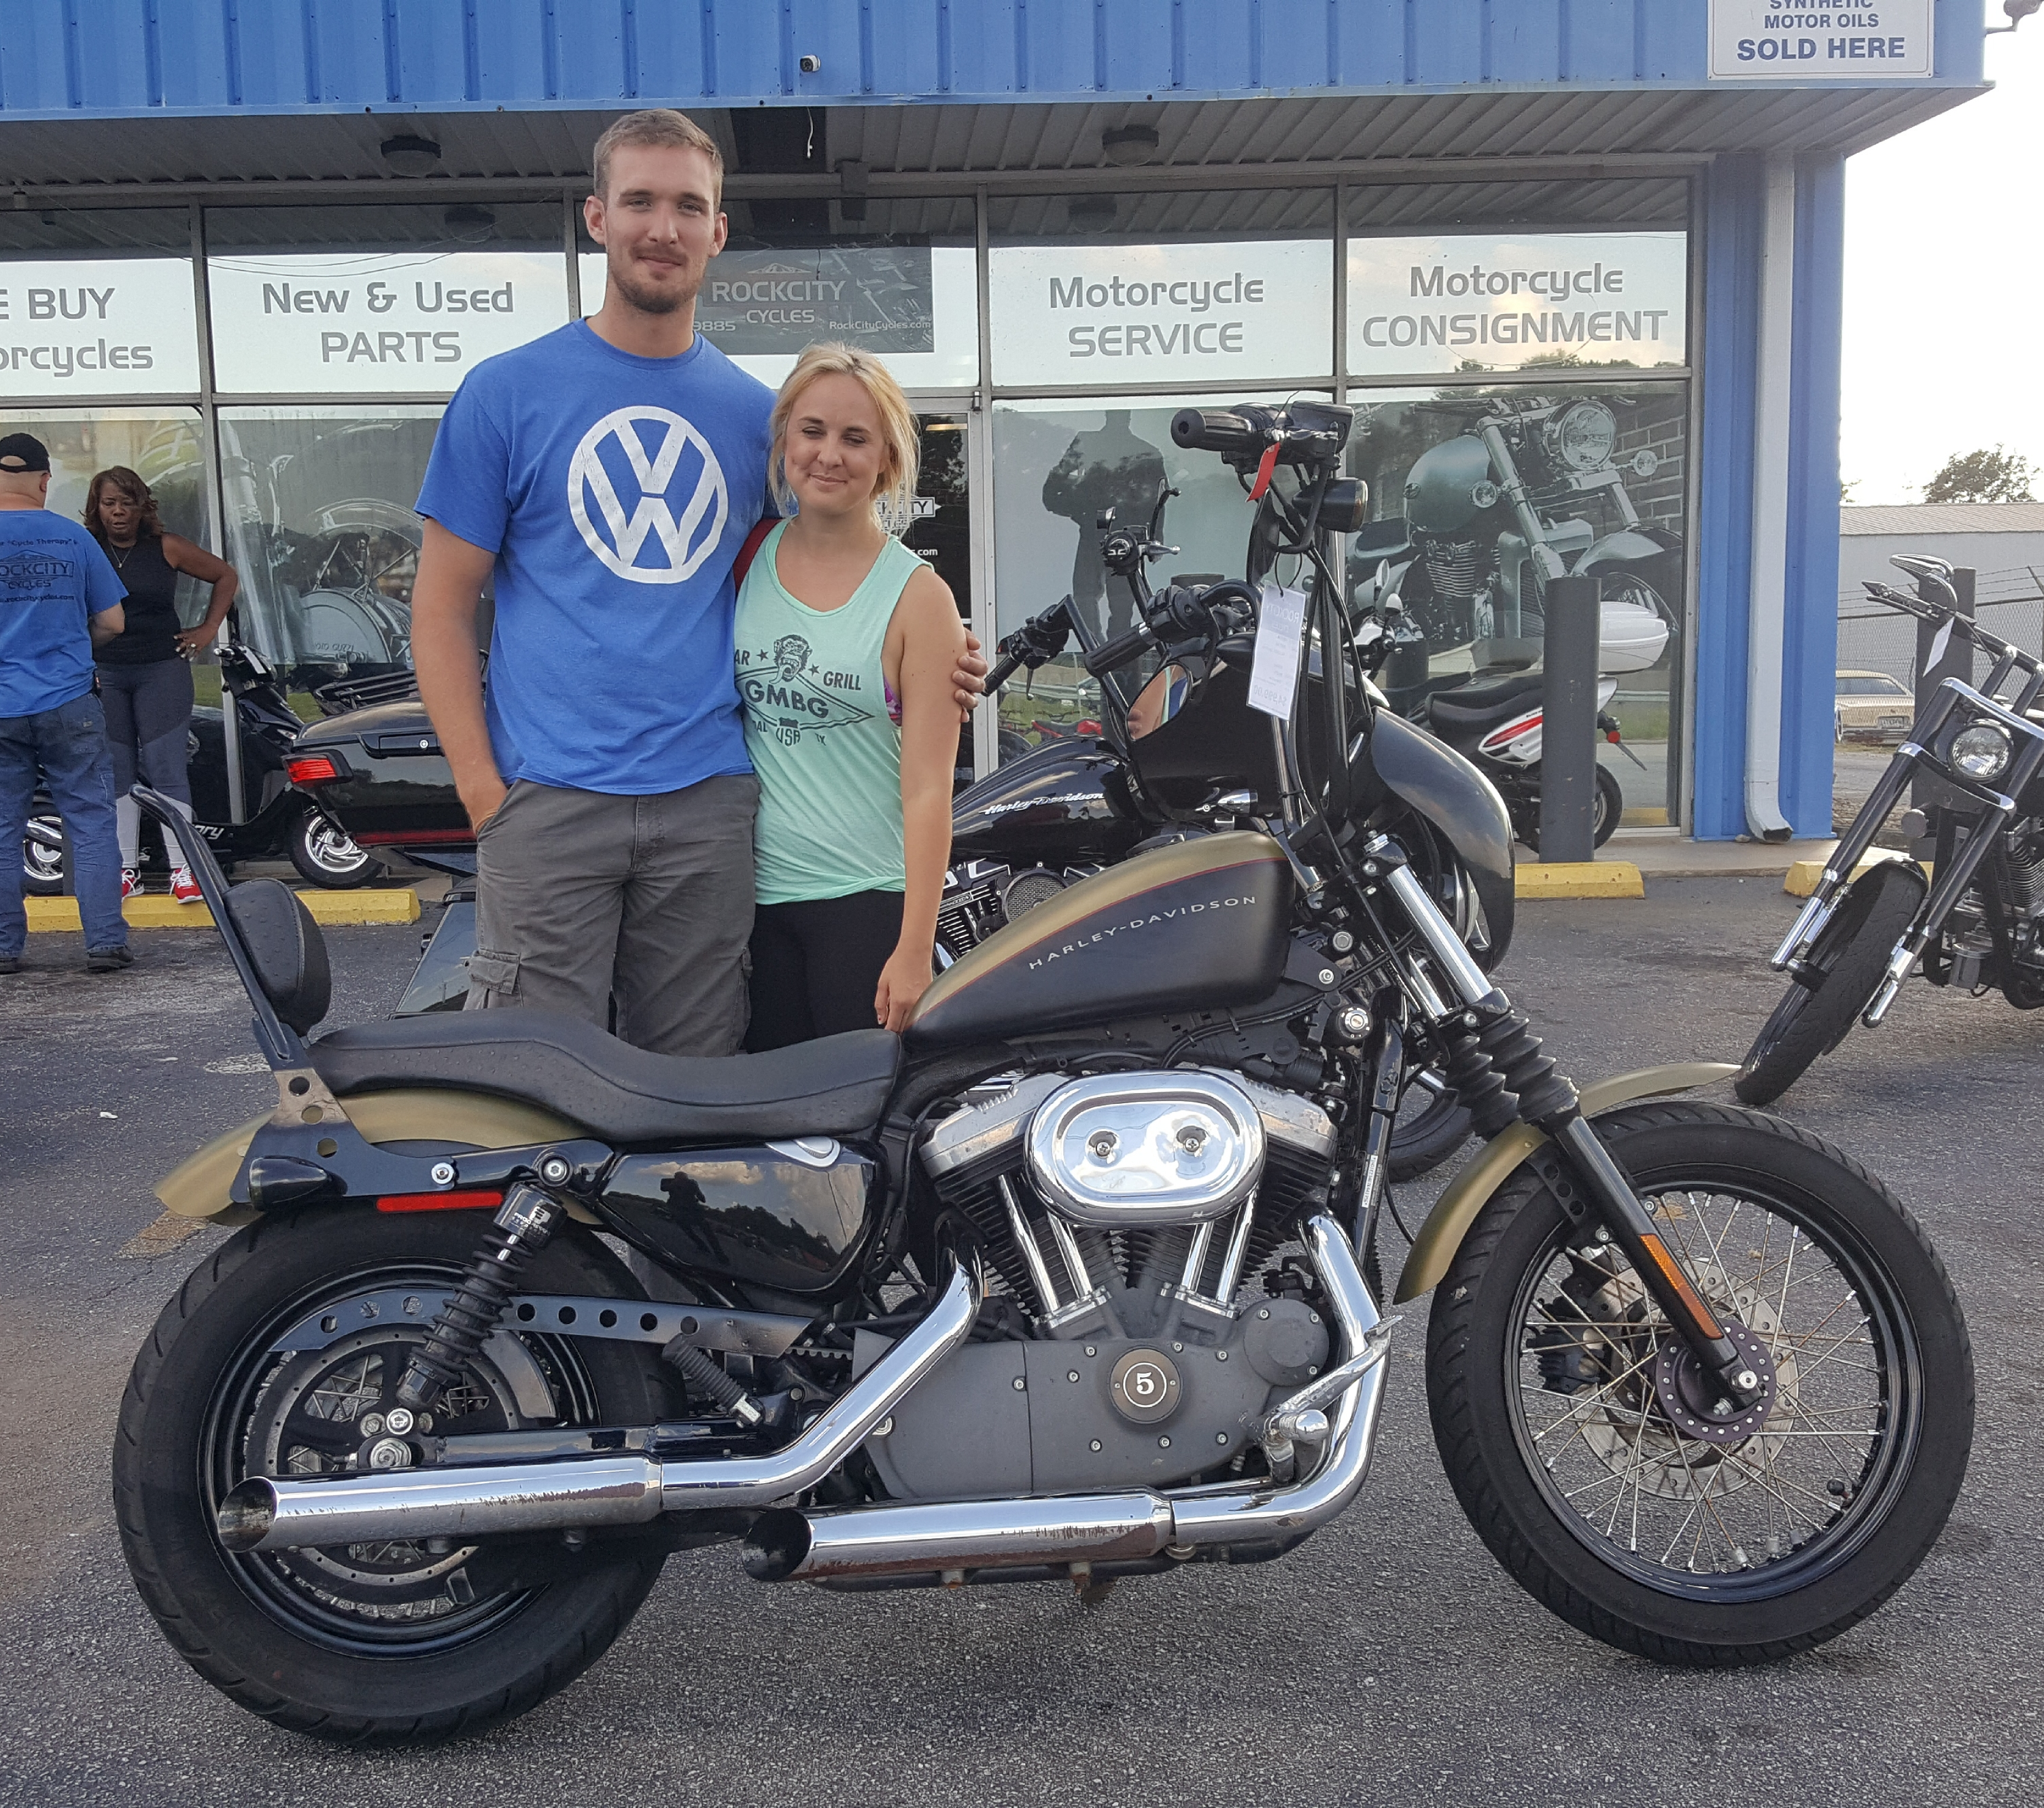 Jacob C. with 2007 Harley-Davidson XL1200N Sportster